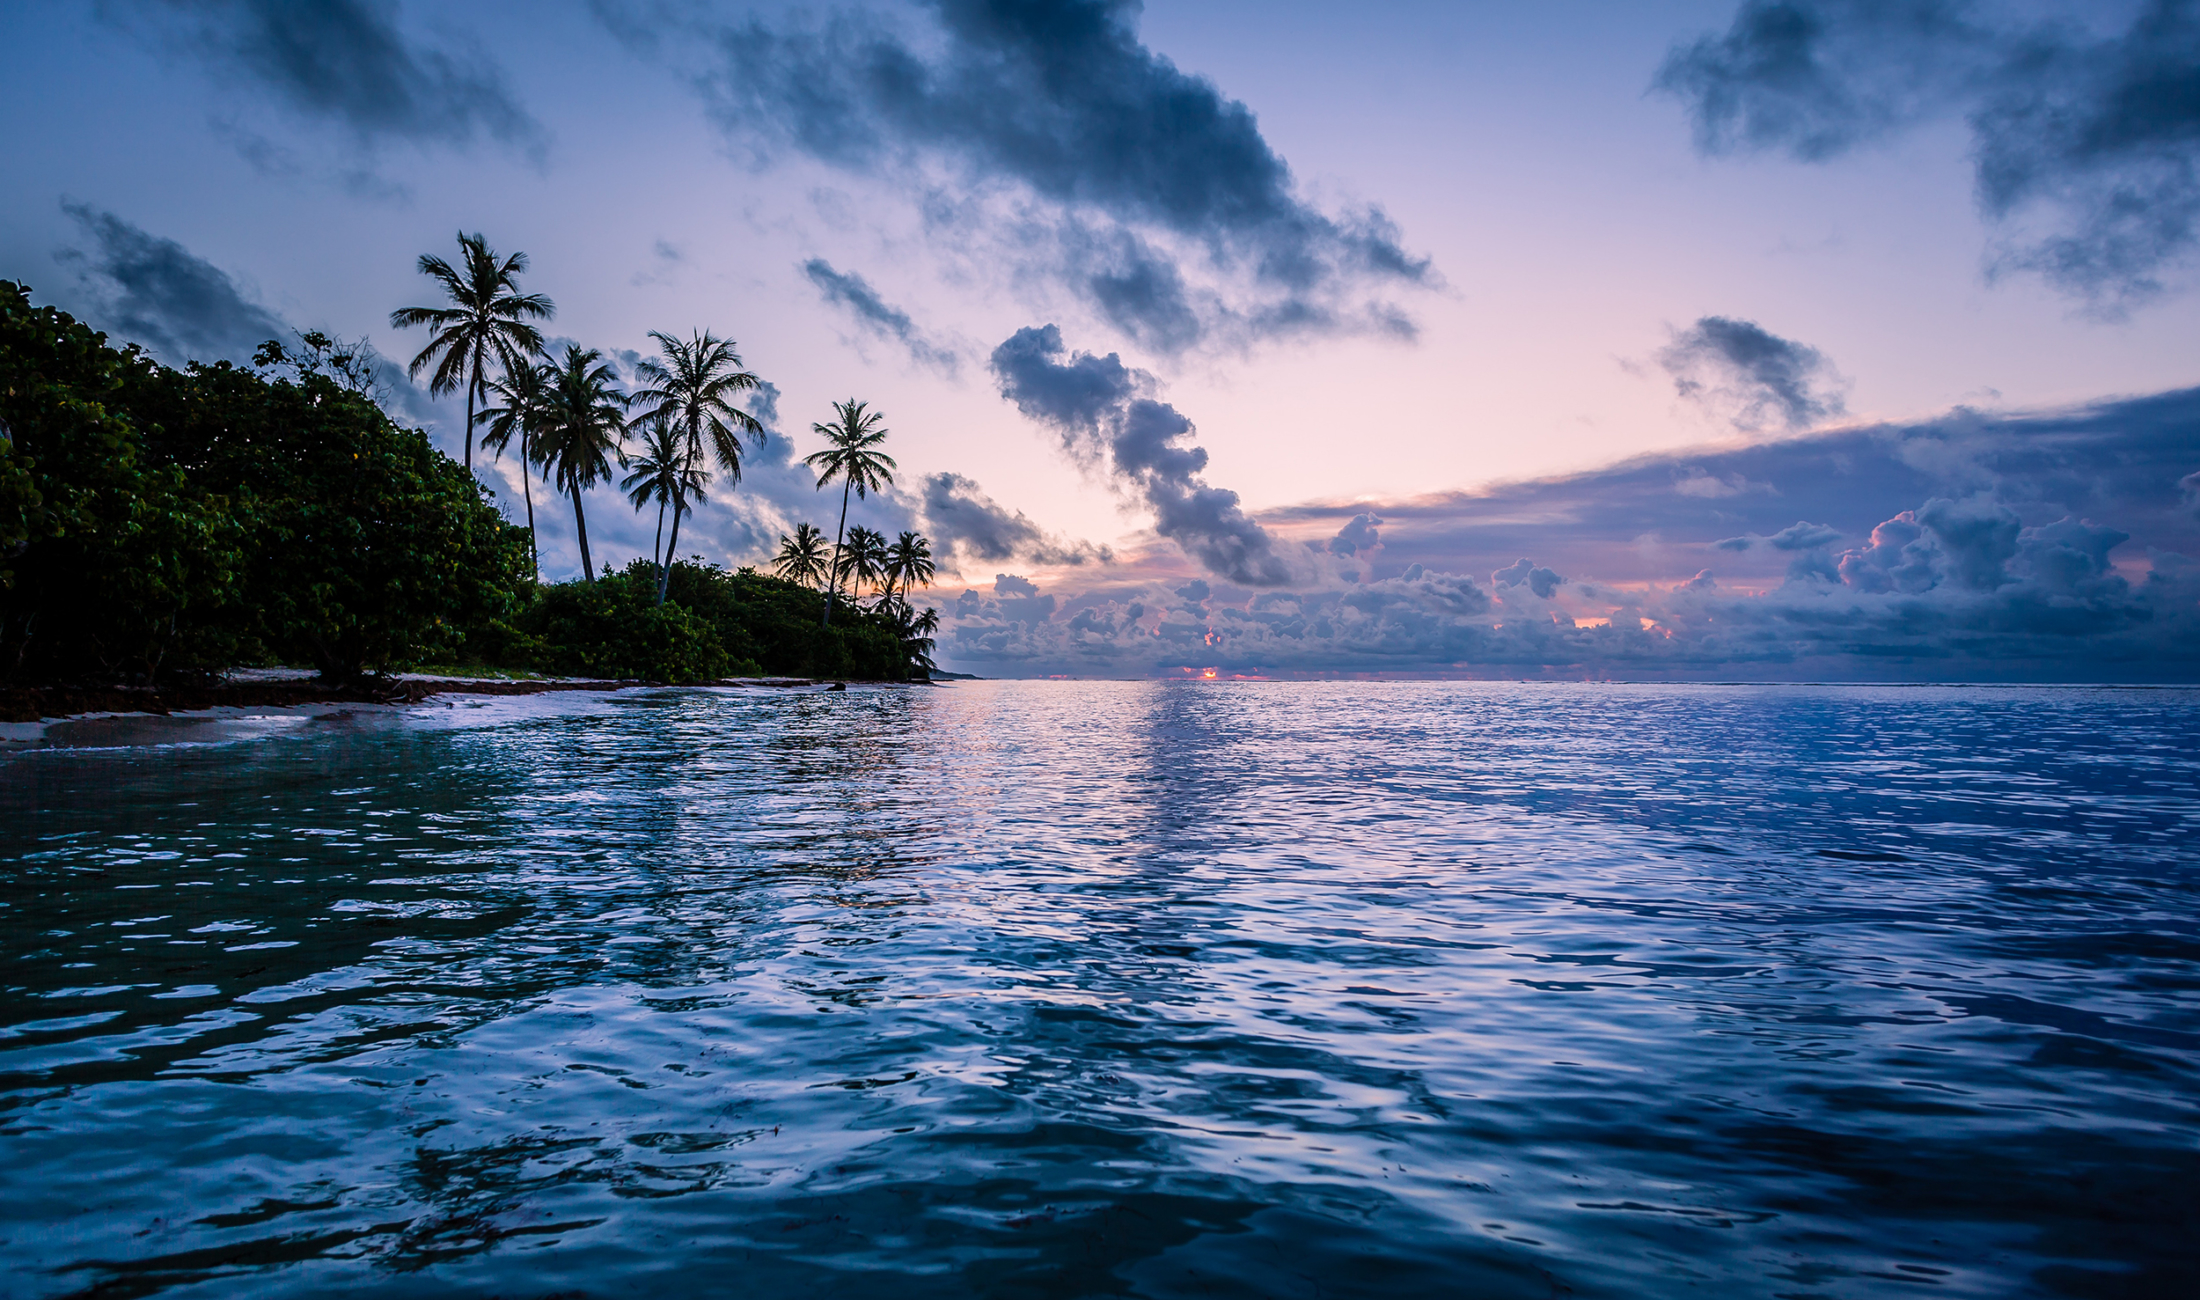 Delta_Voyages_Guadeloupe_Accueil